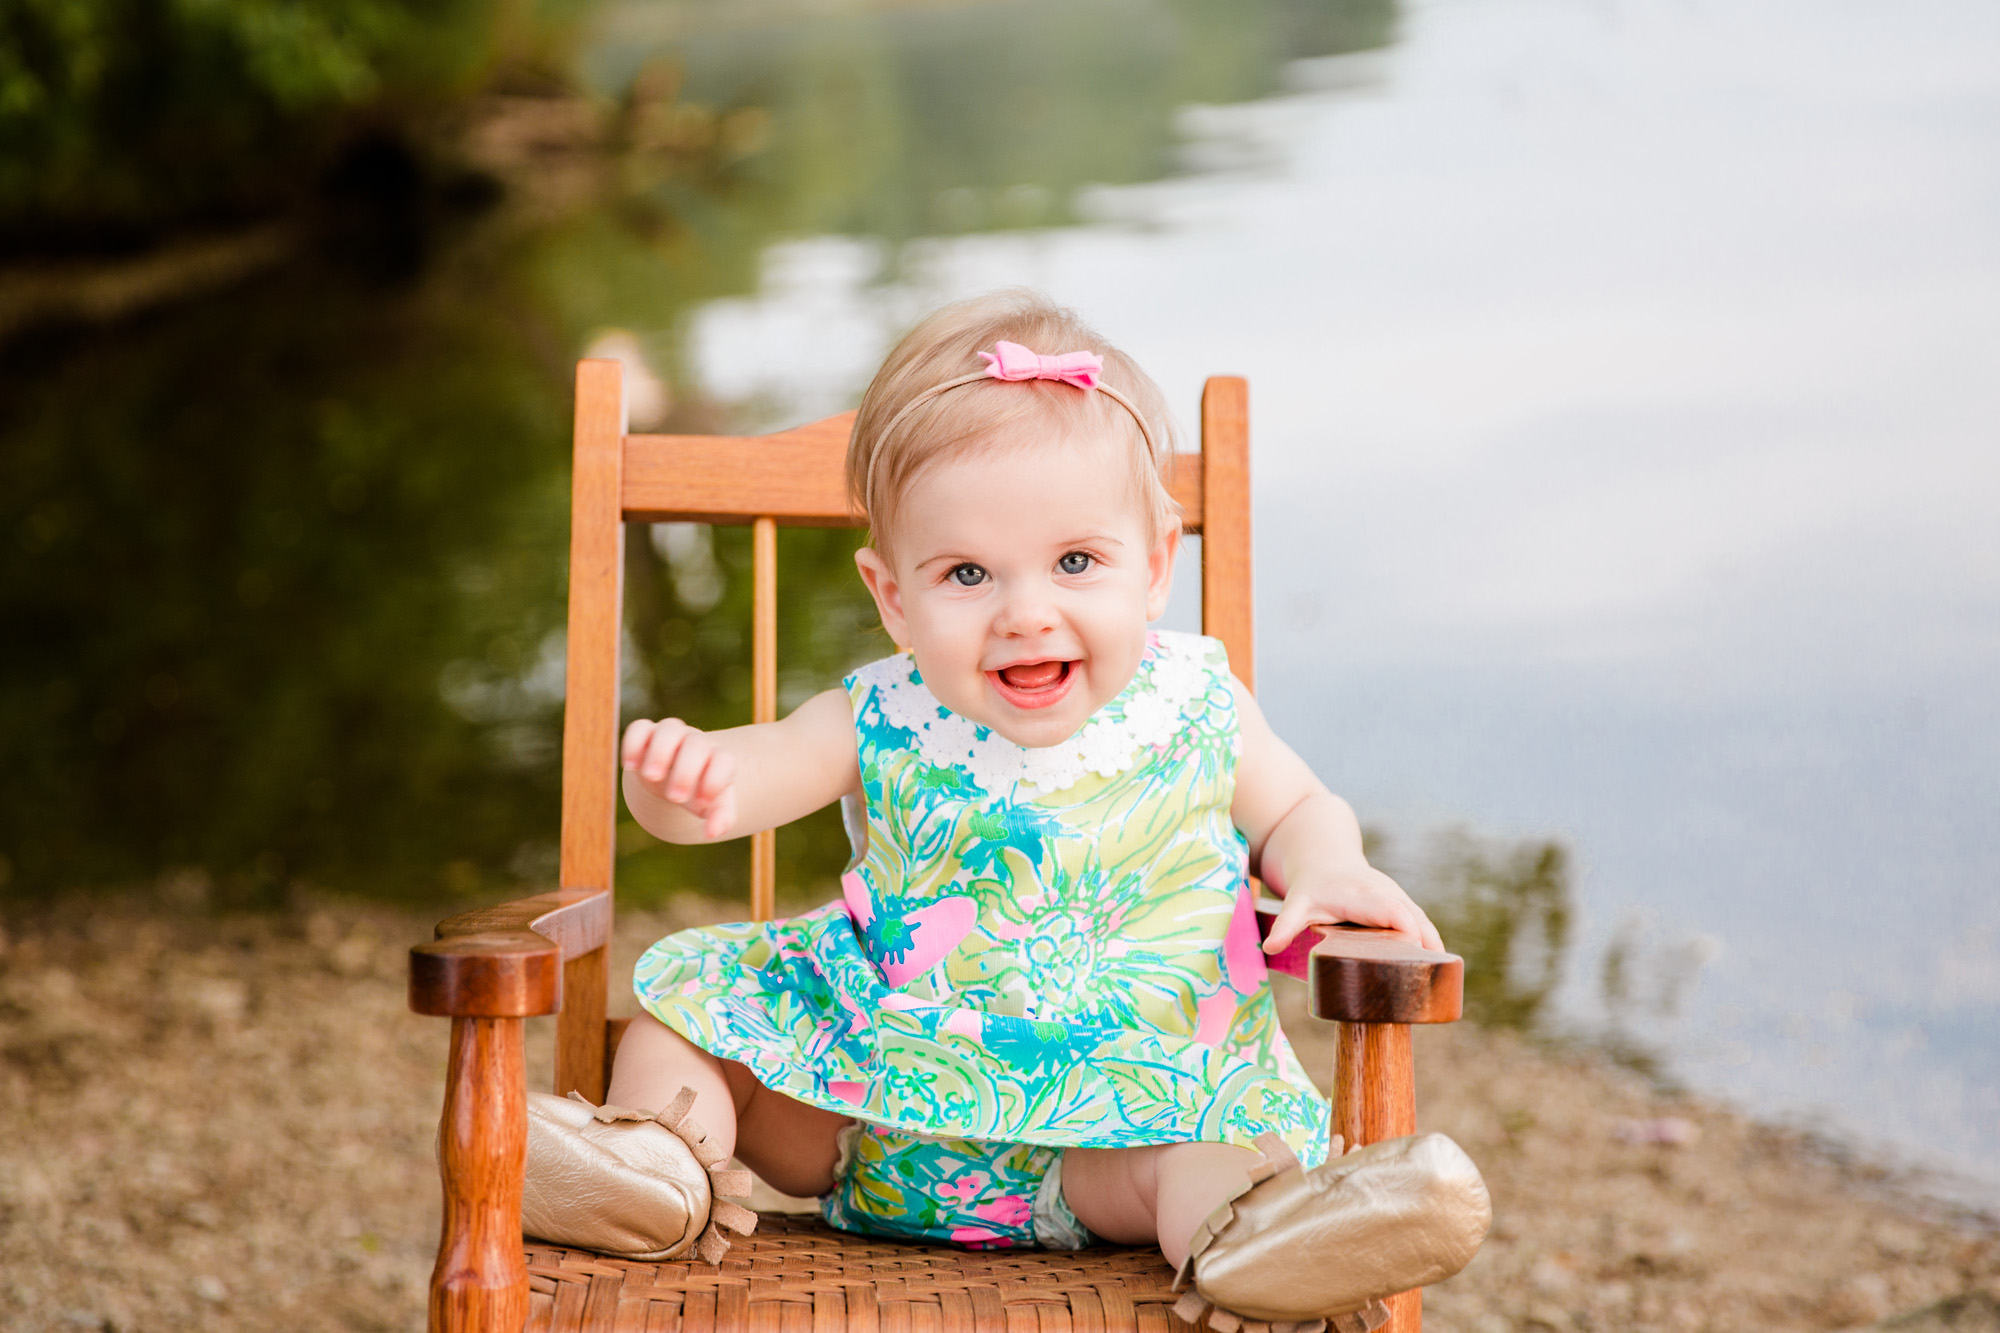 One year outdoor session with little 1 year wearing Lily Pulitzer sitting on rocking chair taken by DMV newborn photographer Sarah Botta Photography in Woodbridge, VA